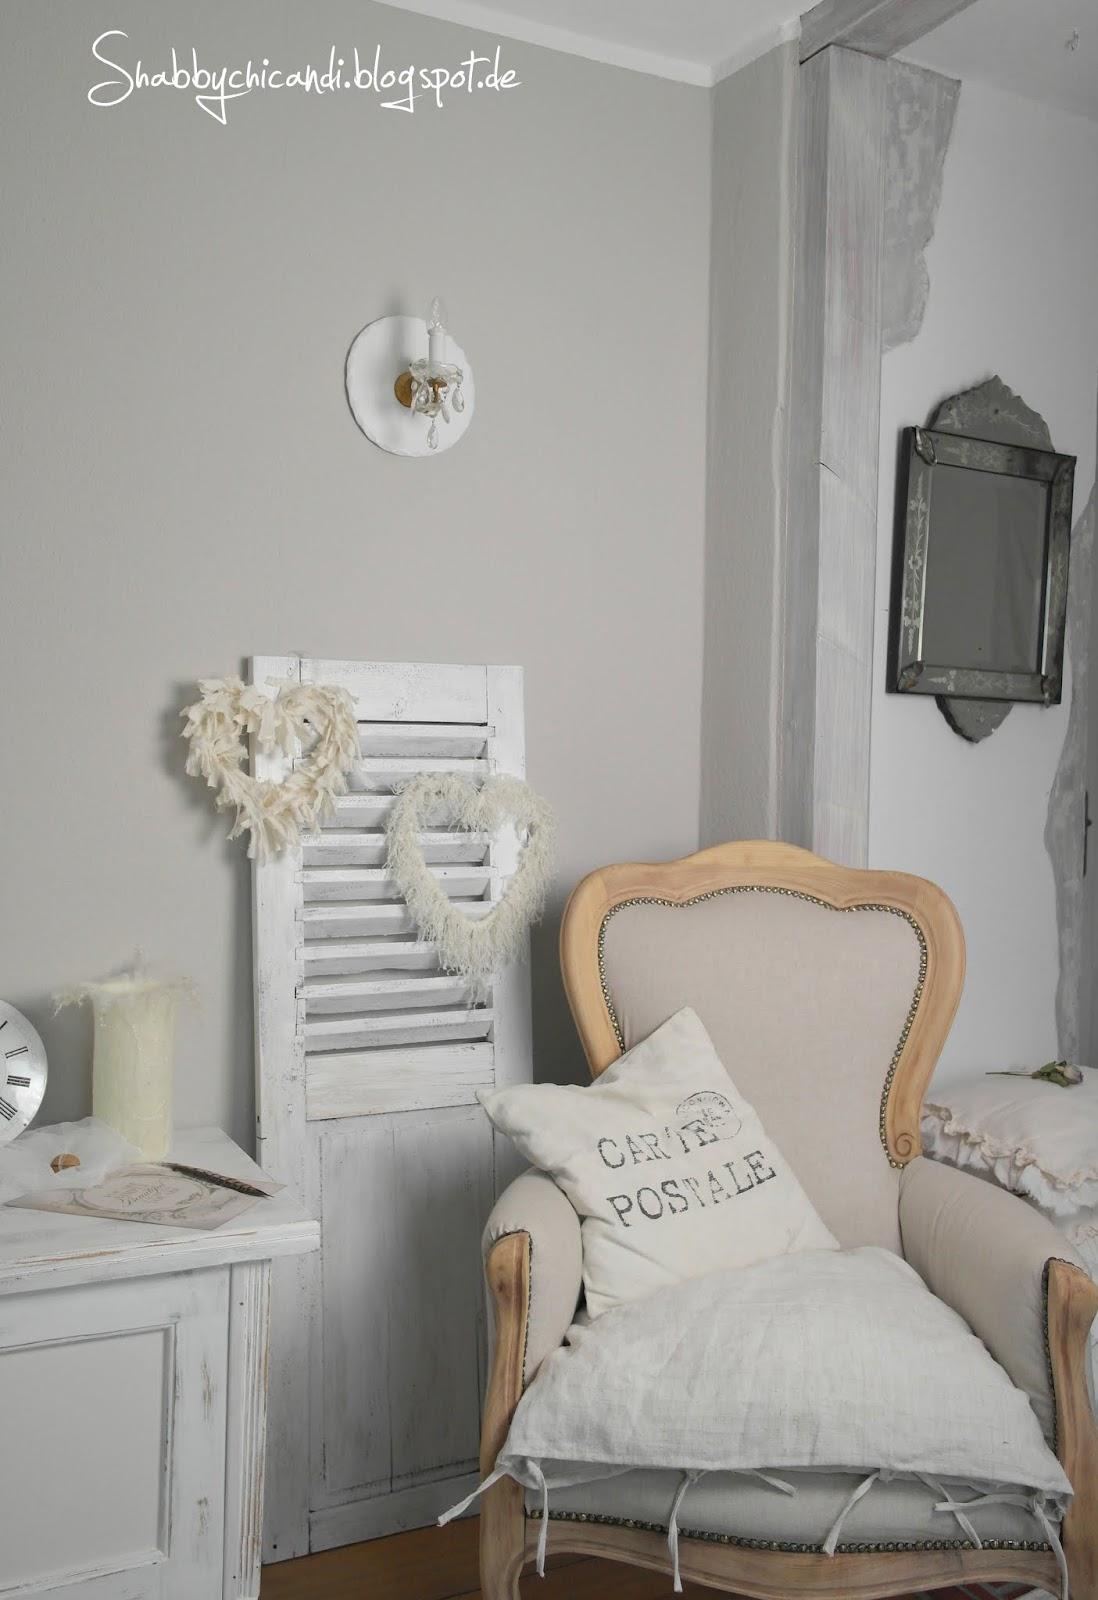 shabby chic and i shabby chic diy und deko liebesbotschaft von amor. Black Bedroom Furniture Sets. Home Design Ideas